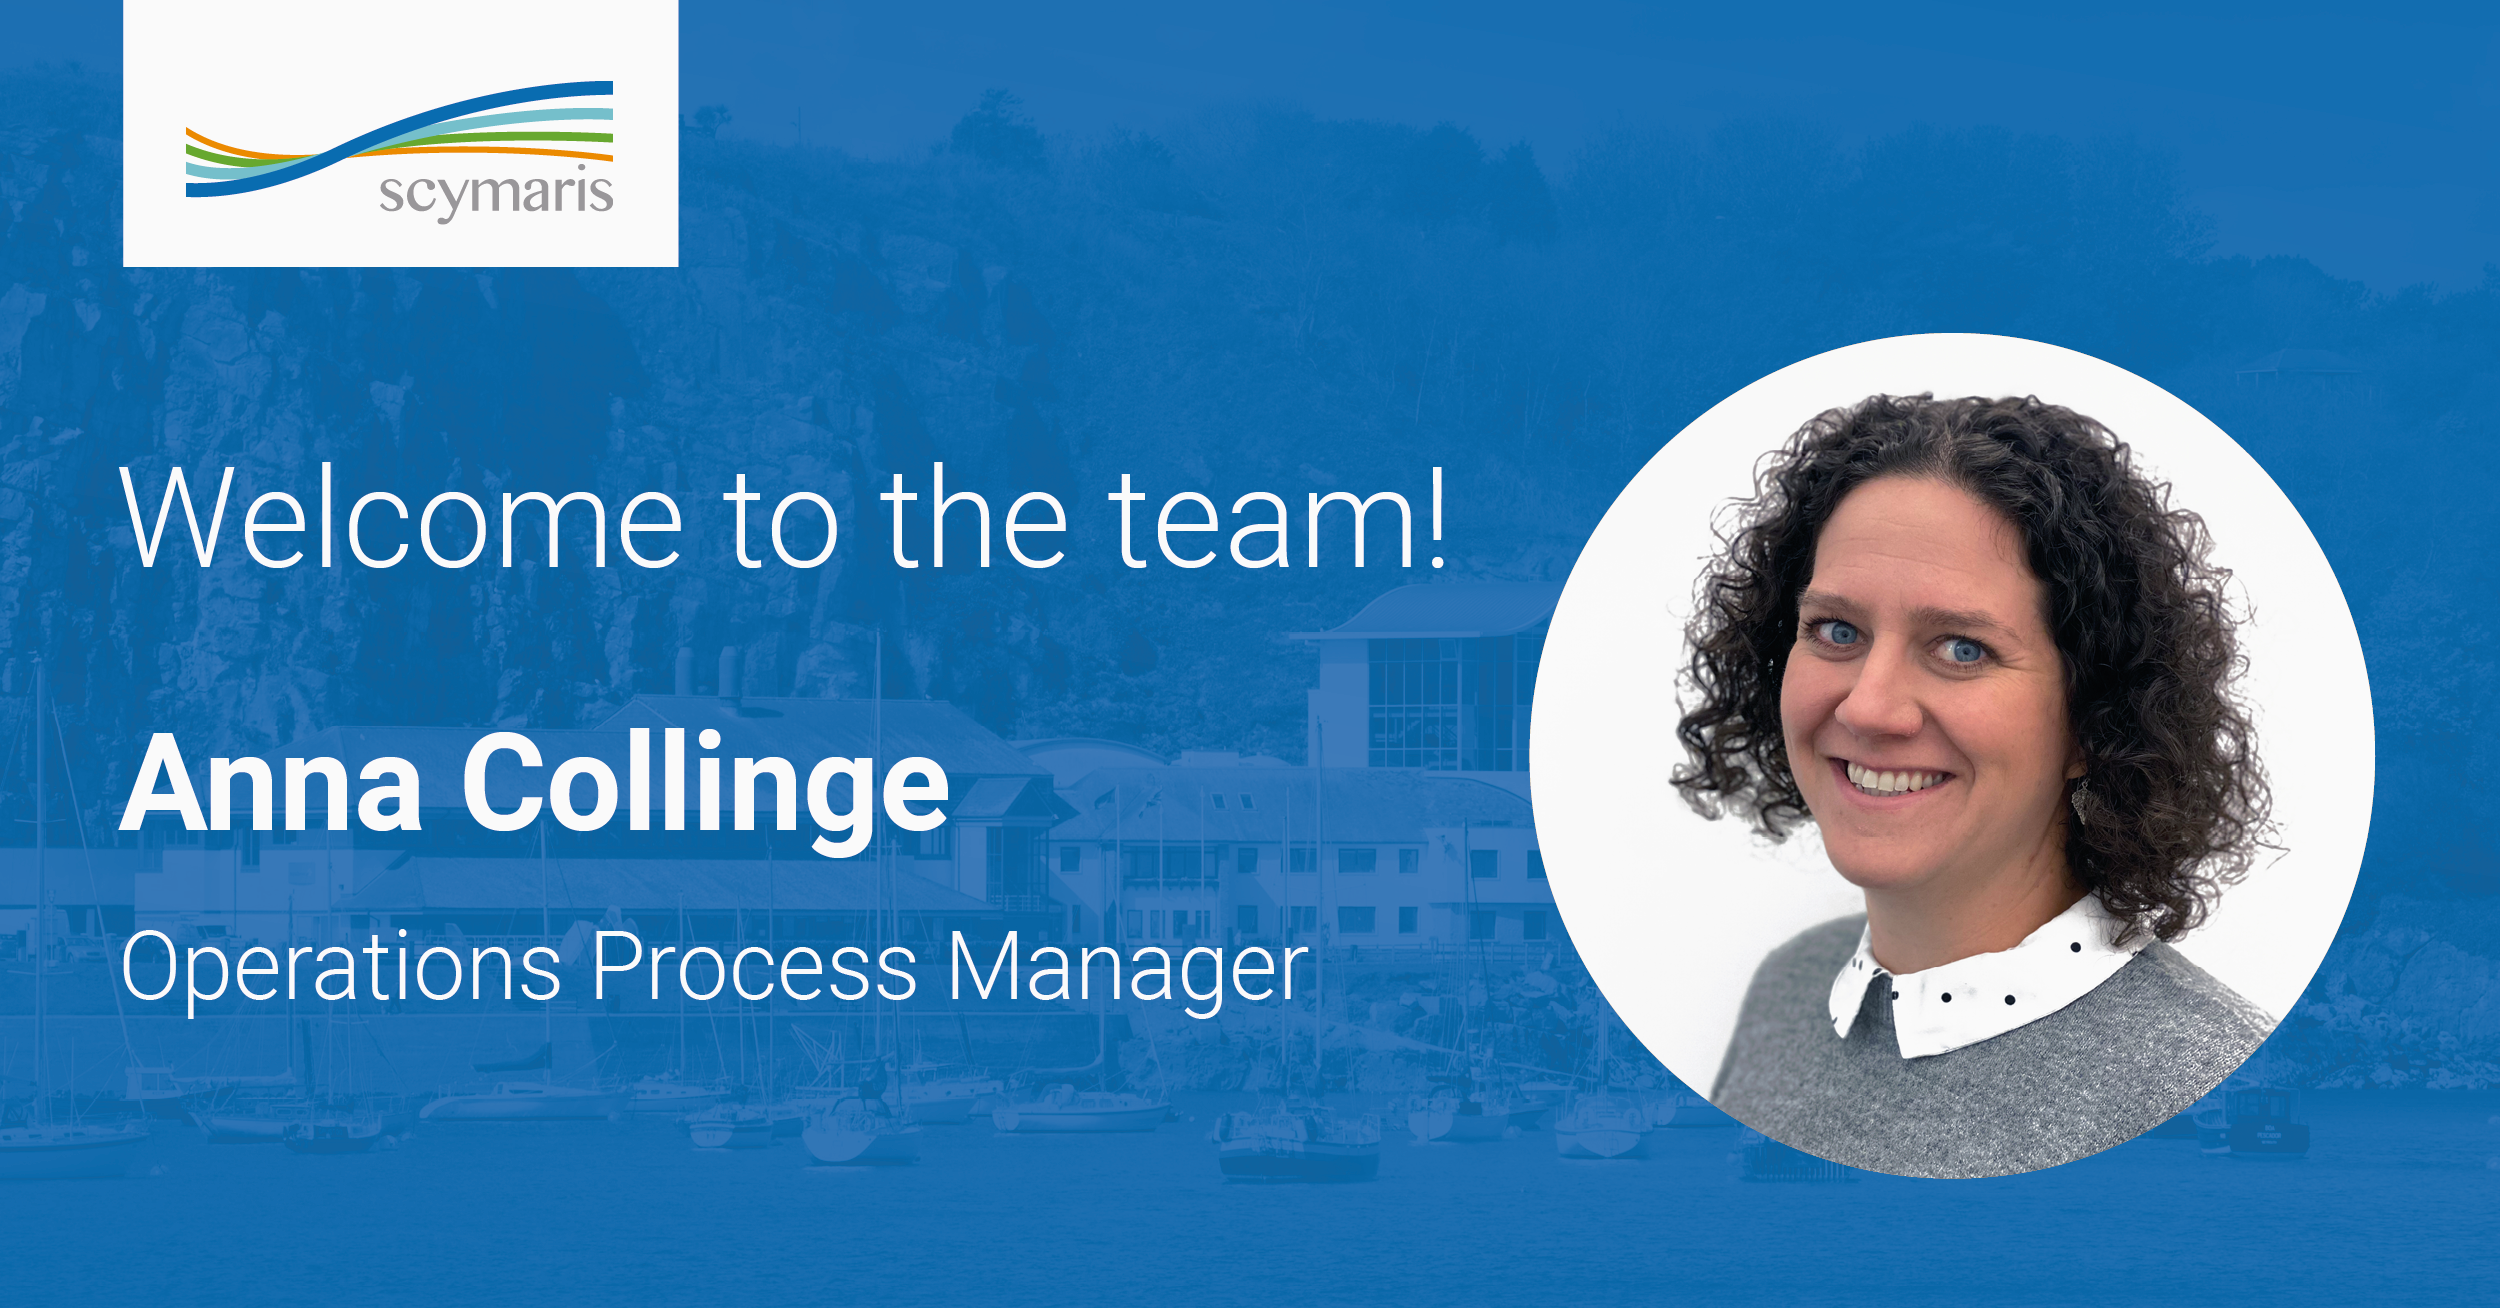 A warm welcome to our new Operations Process Manager